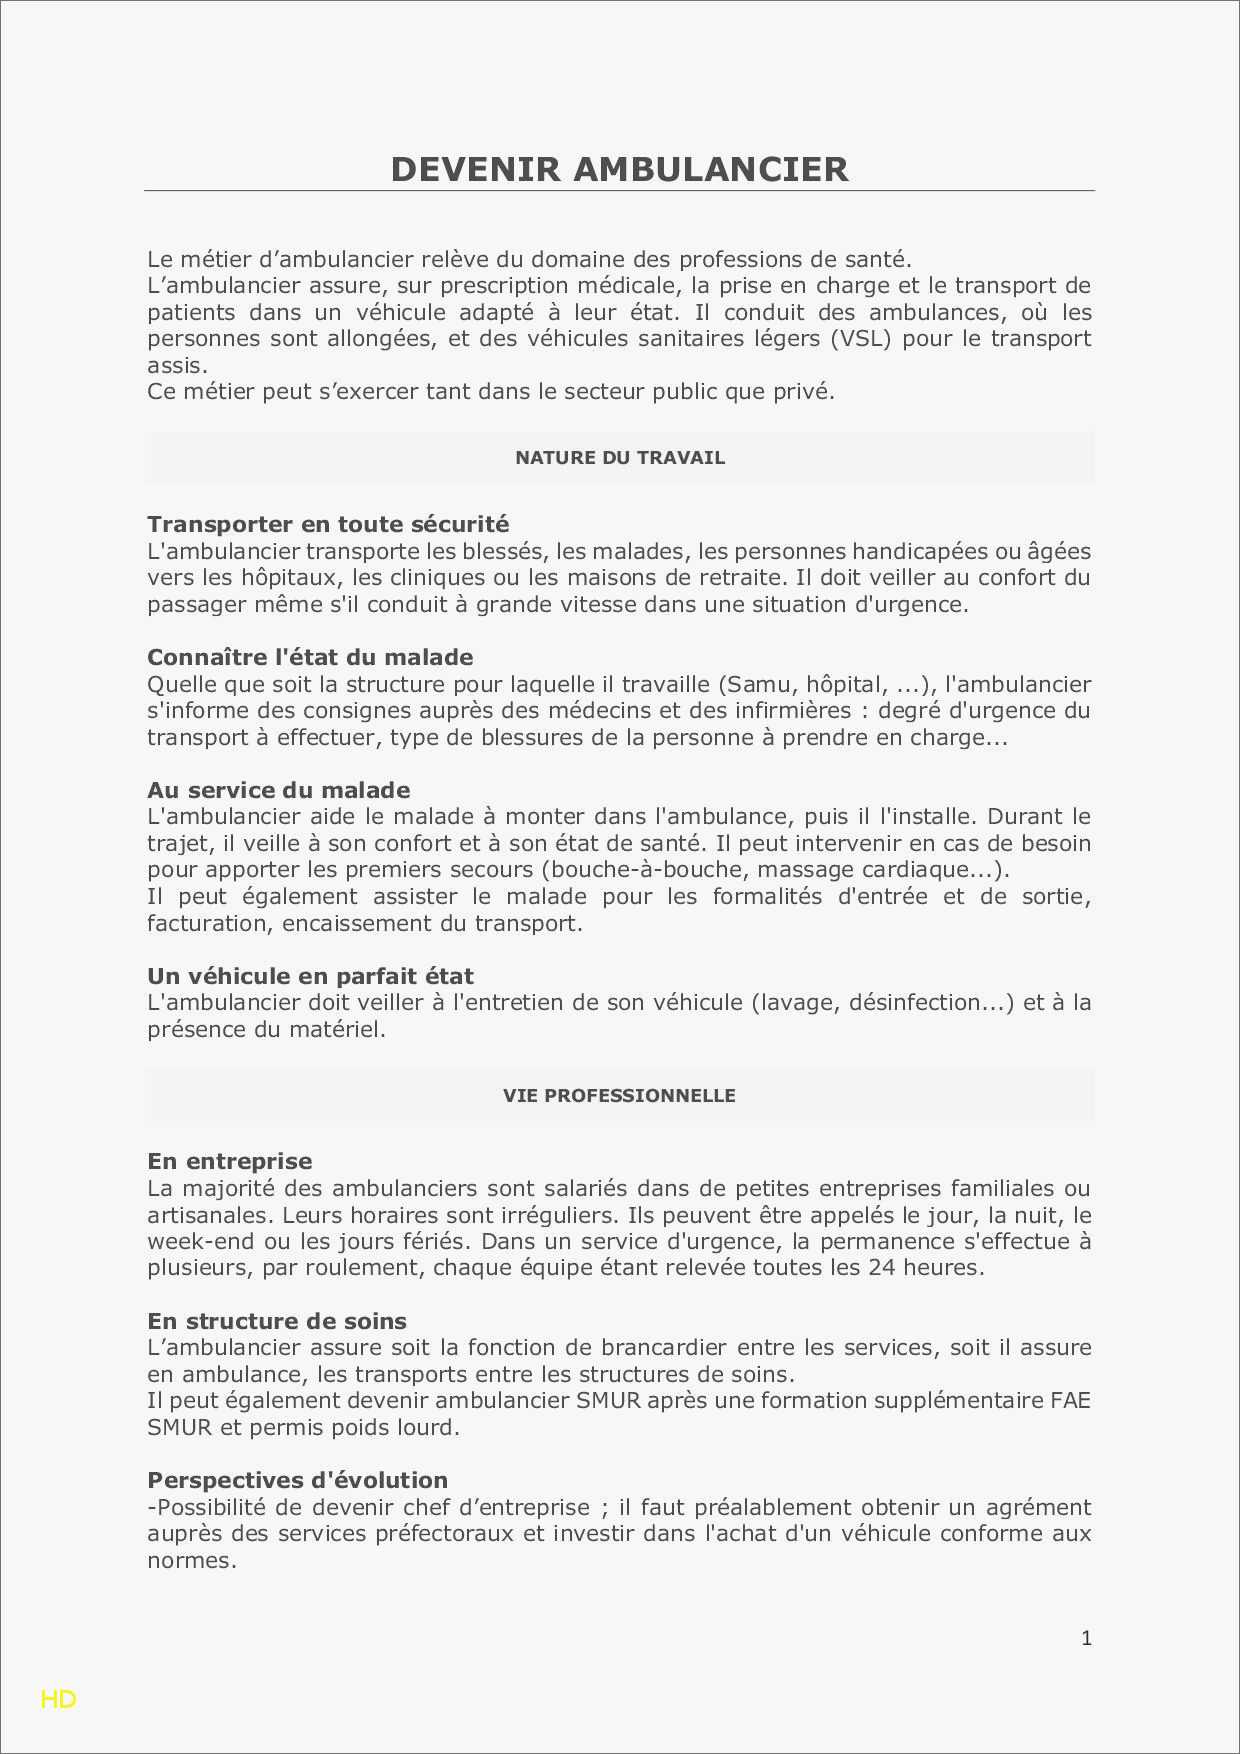 lettre de motivation job d u0026 39  u00e9t u00e9 g u00e9ant casino